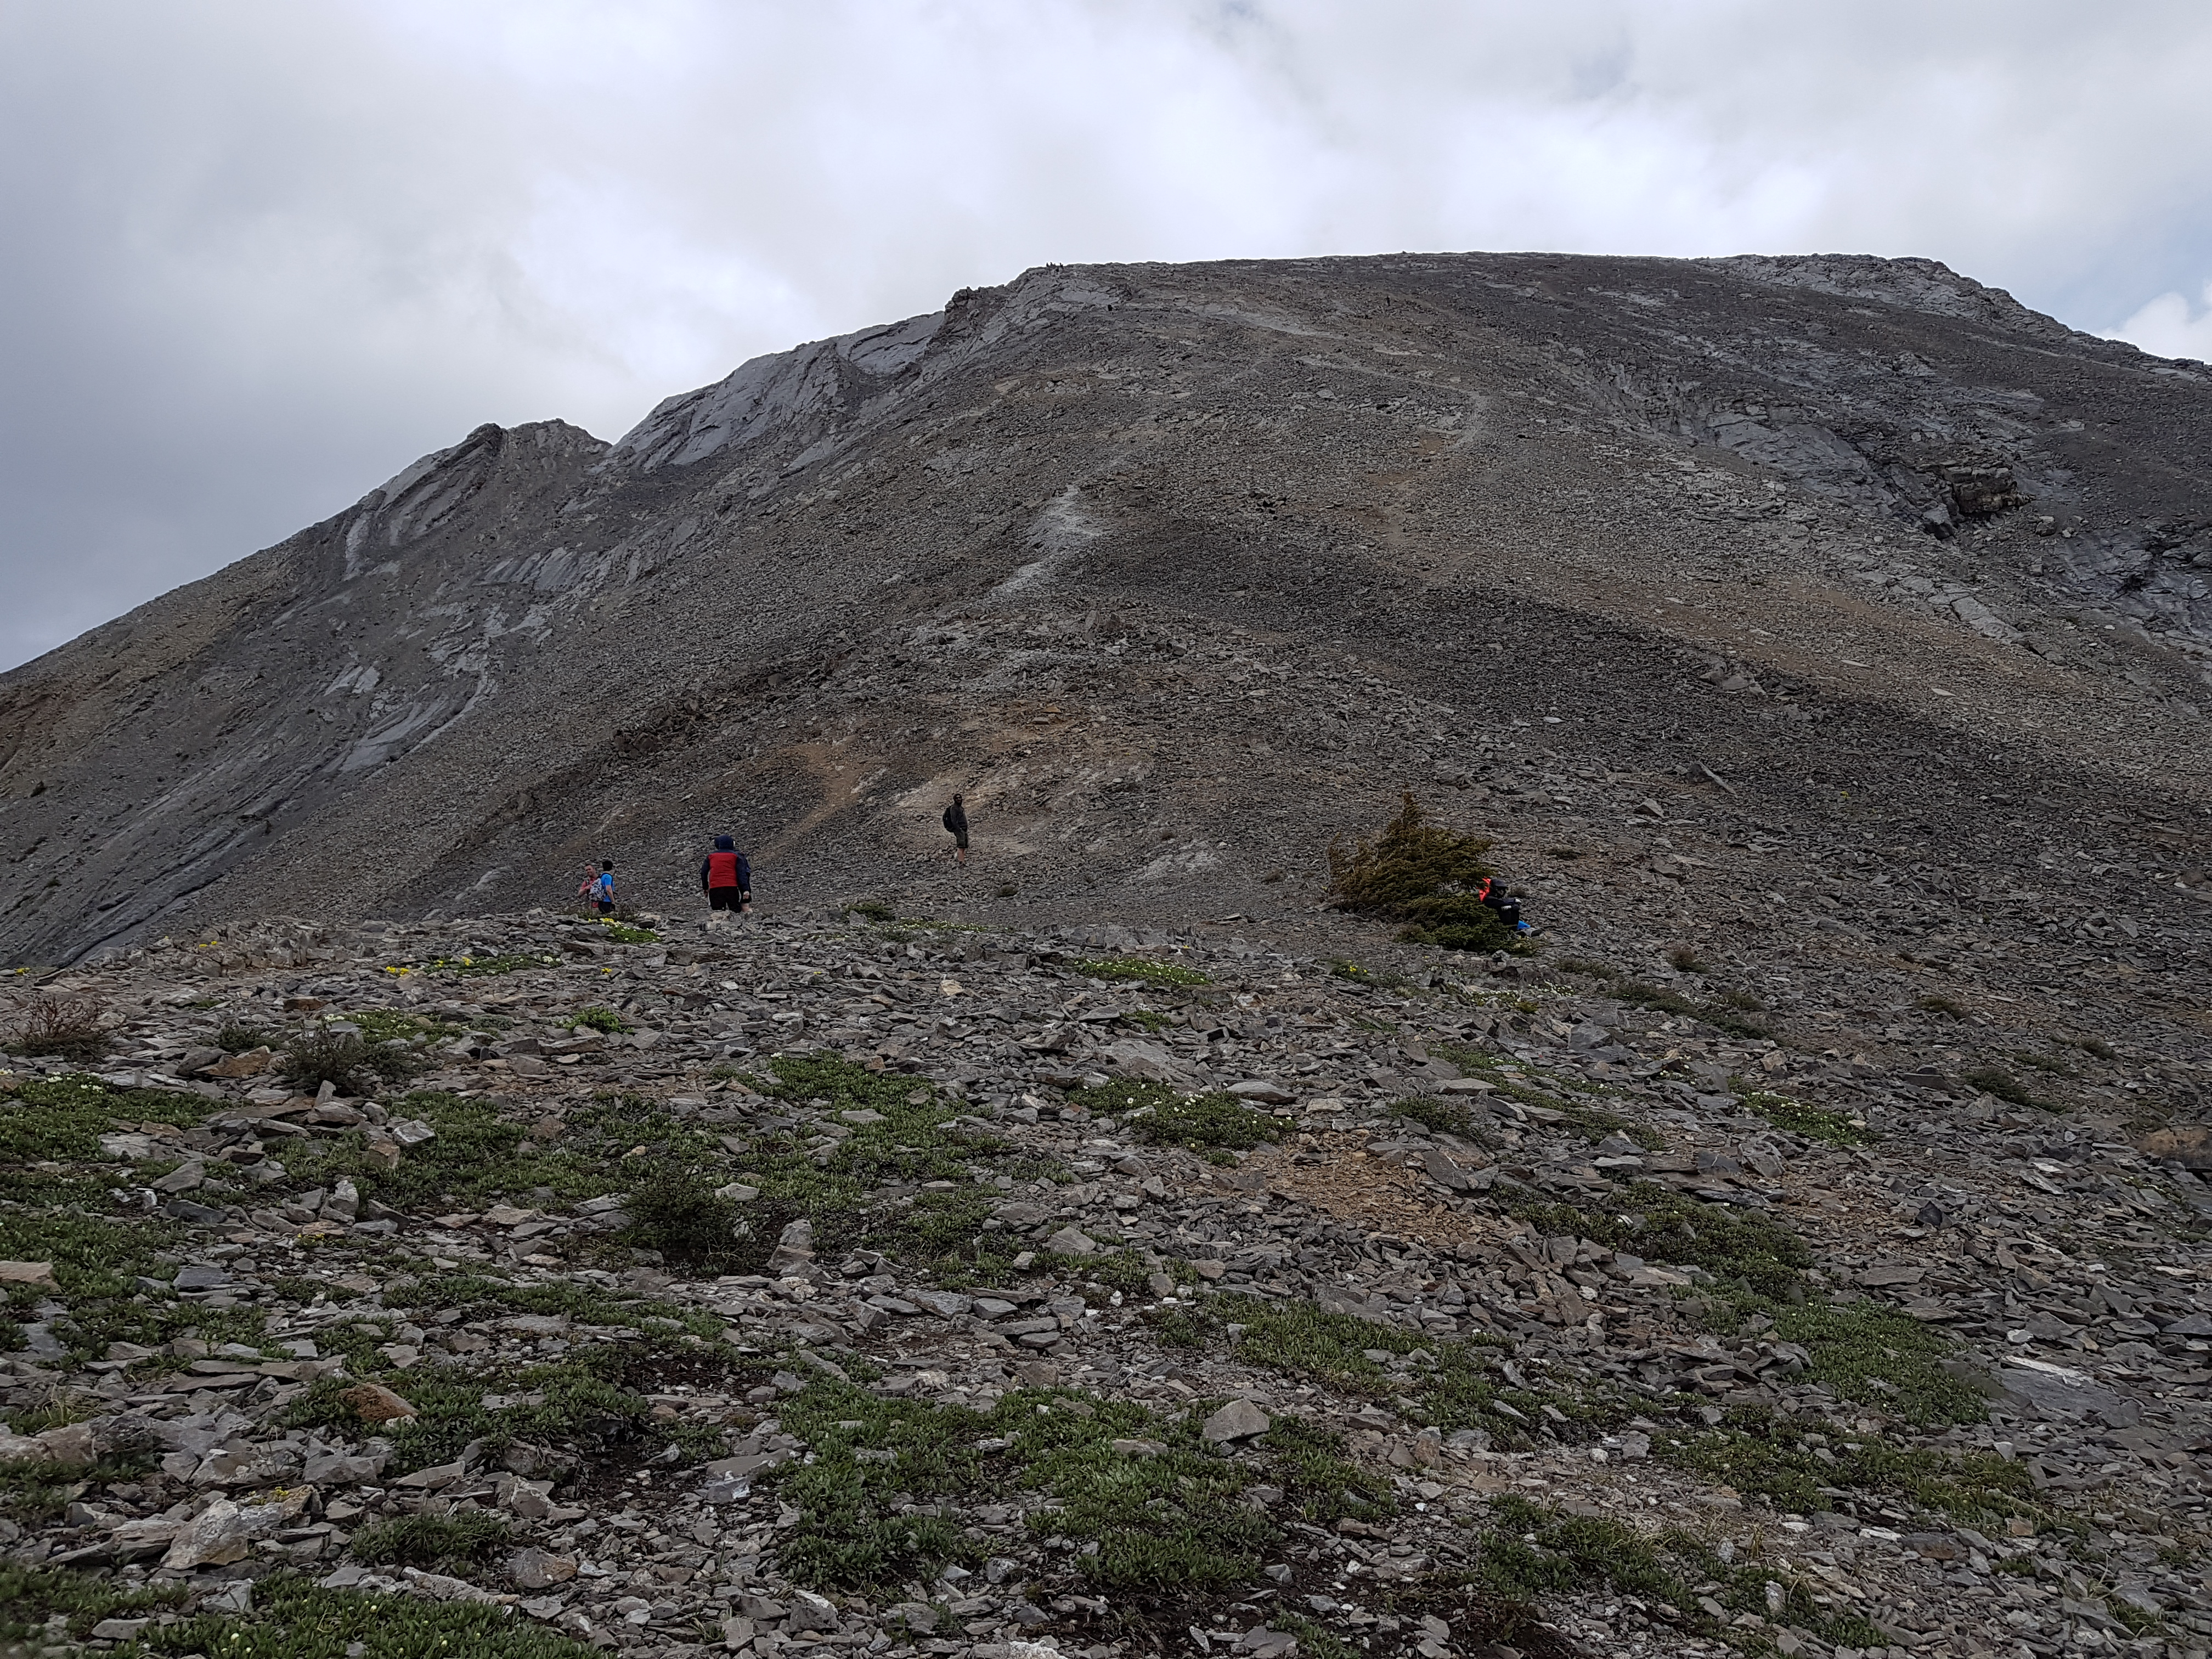 view of top of mountain from the bottom